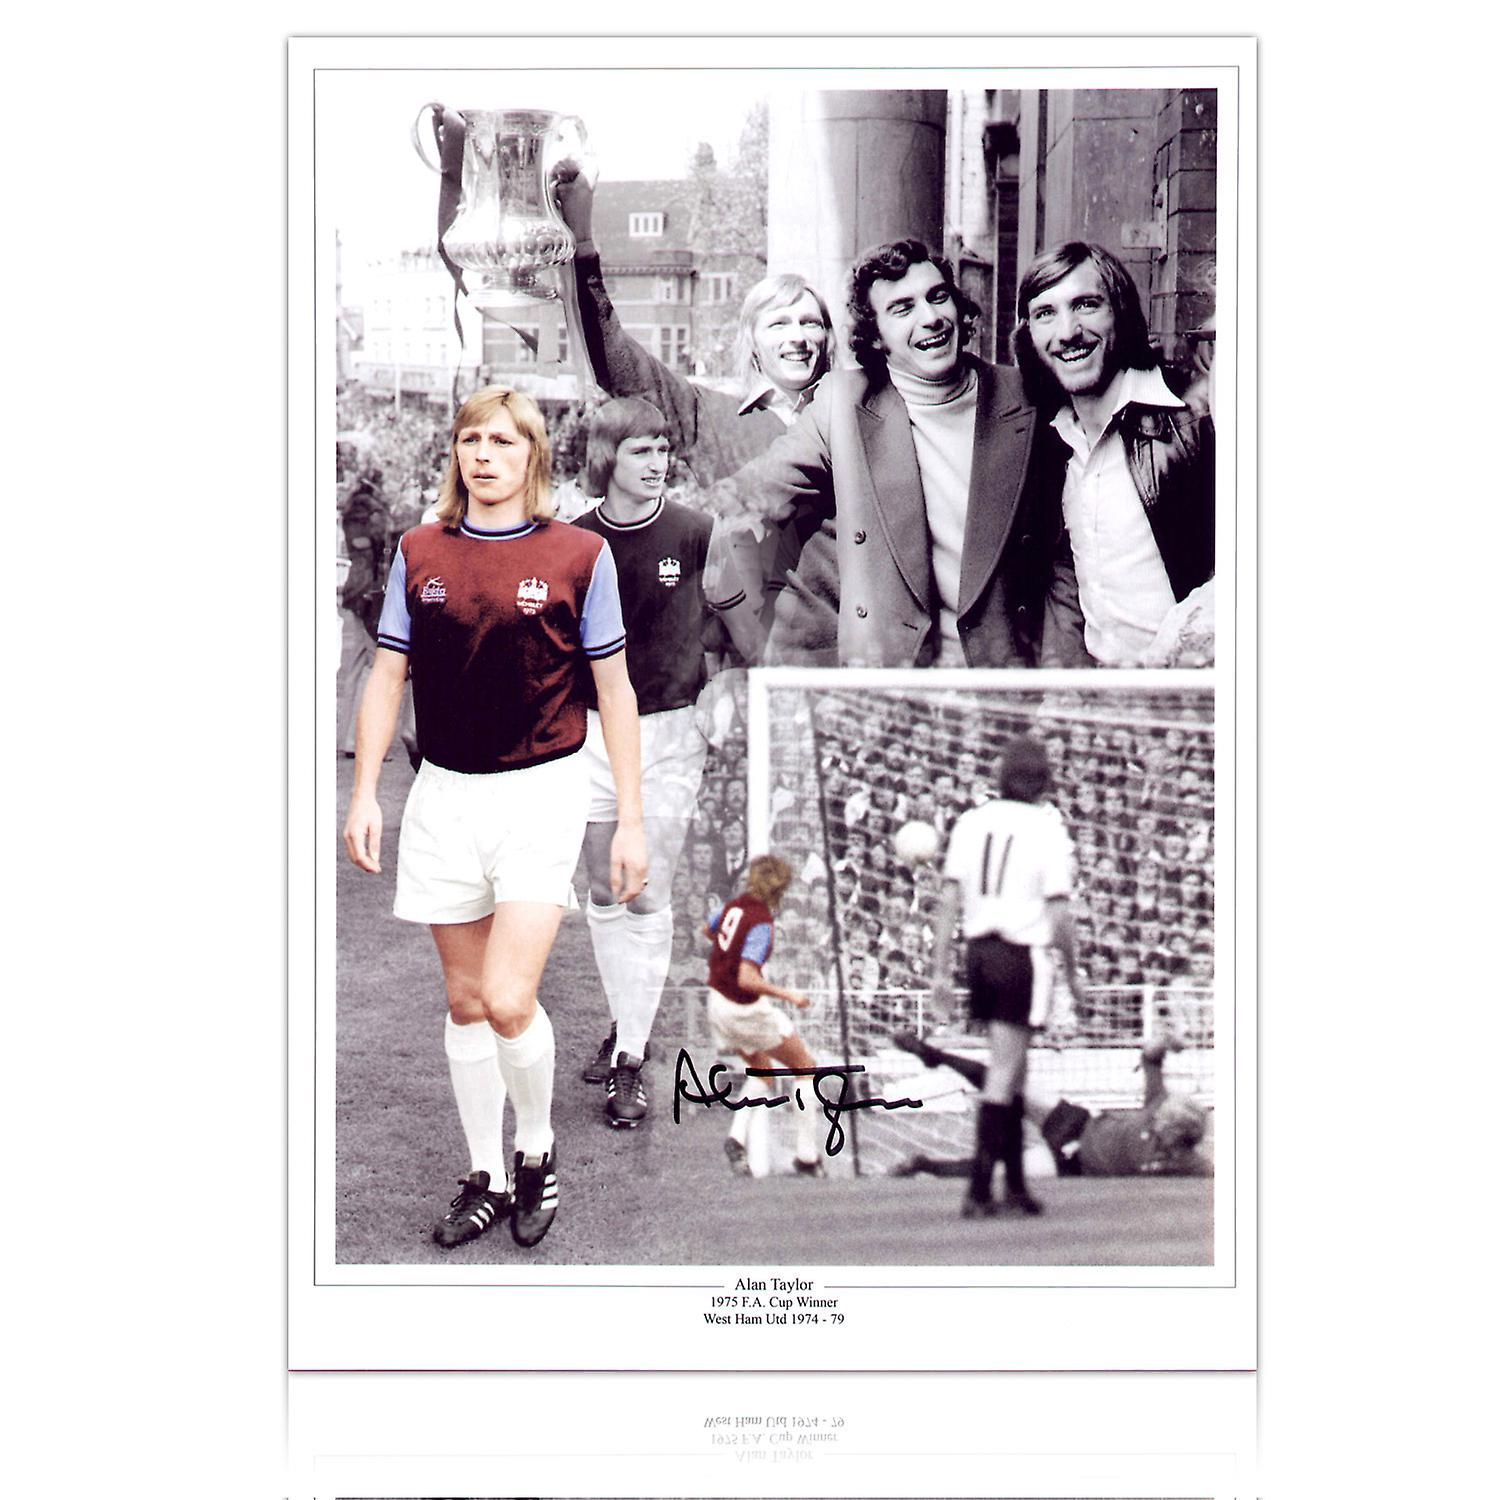 Alan Taylor Signed West Ham United Photograph: 1975 FA Cup Hero